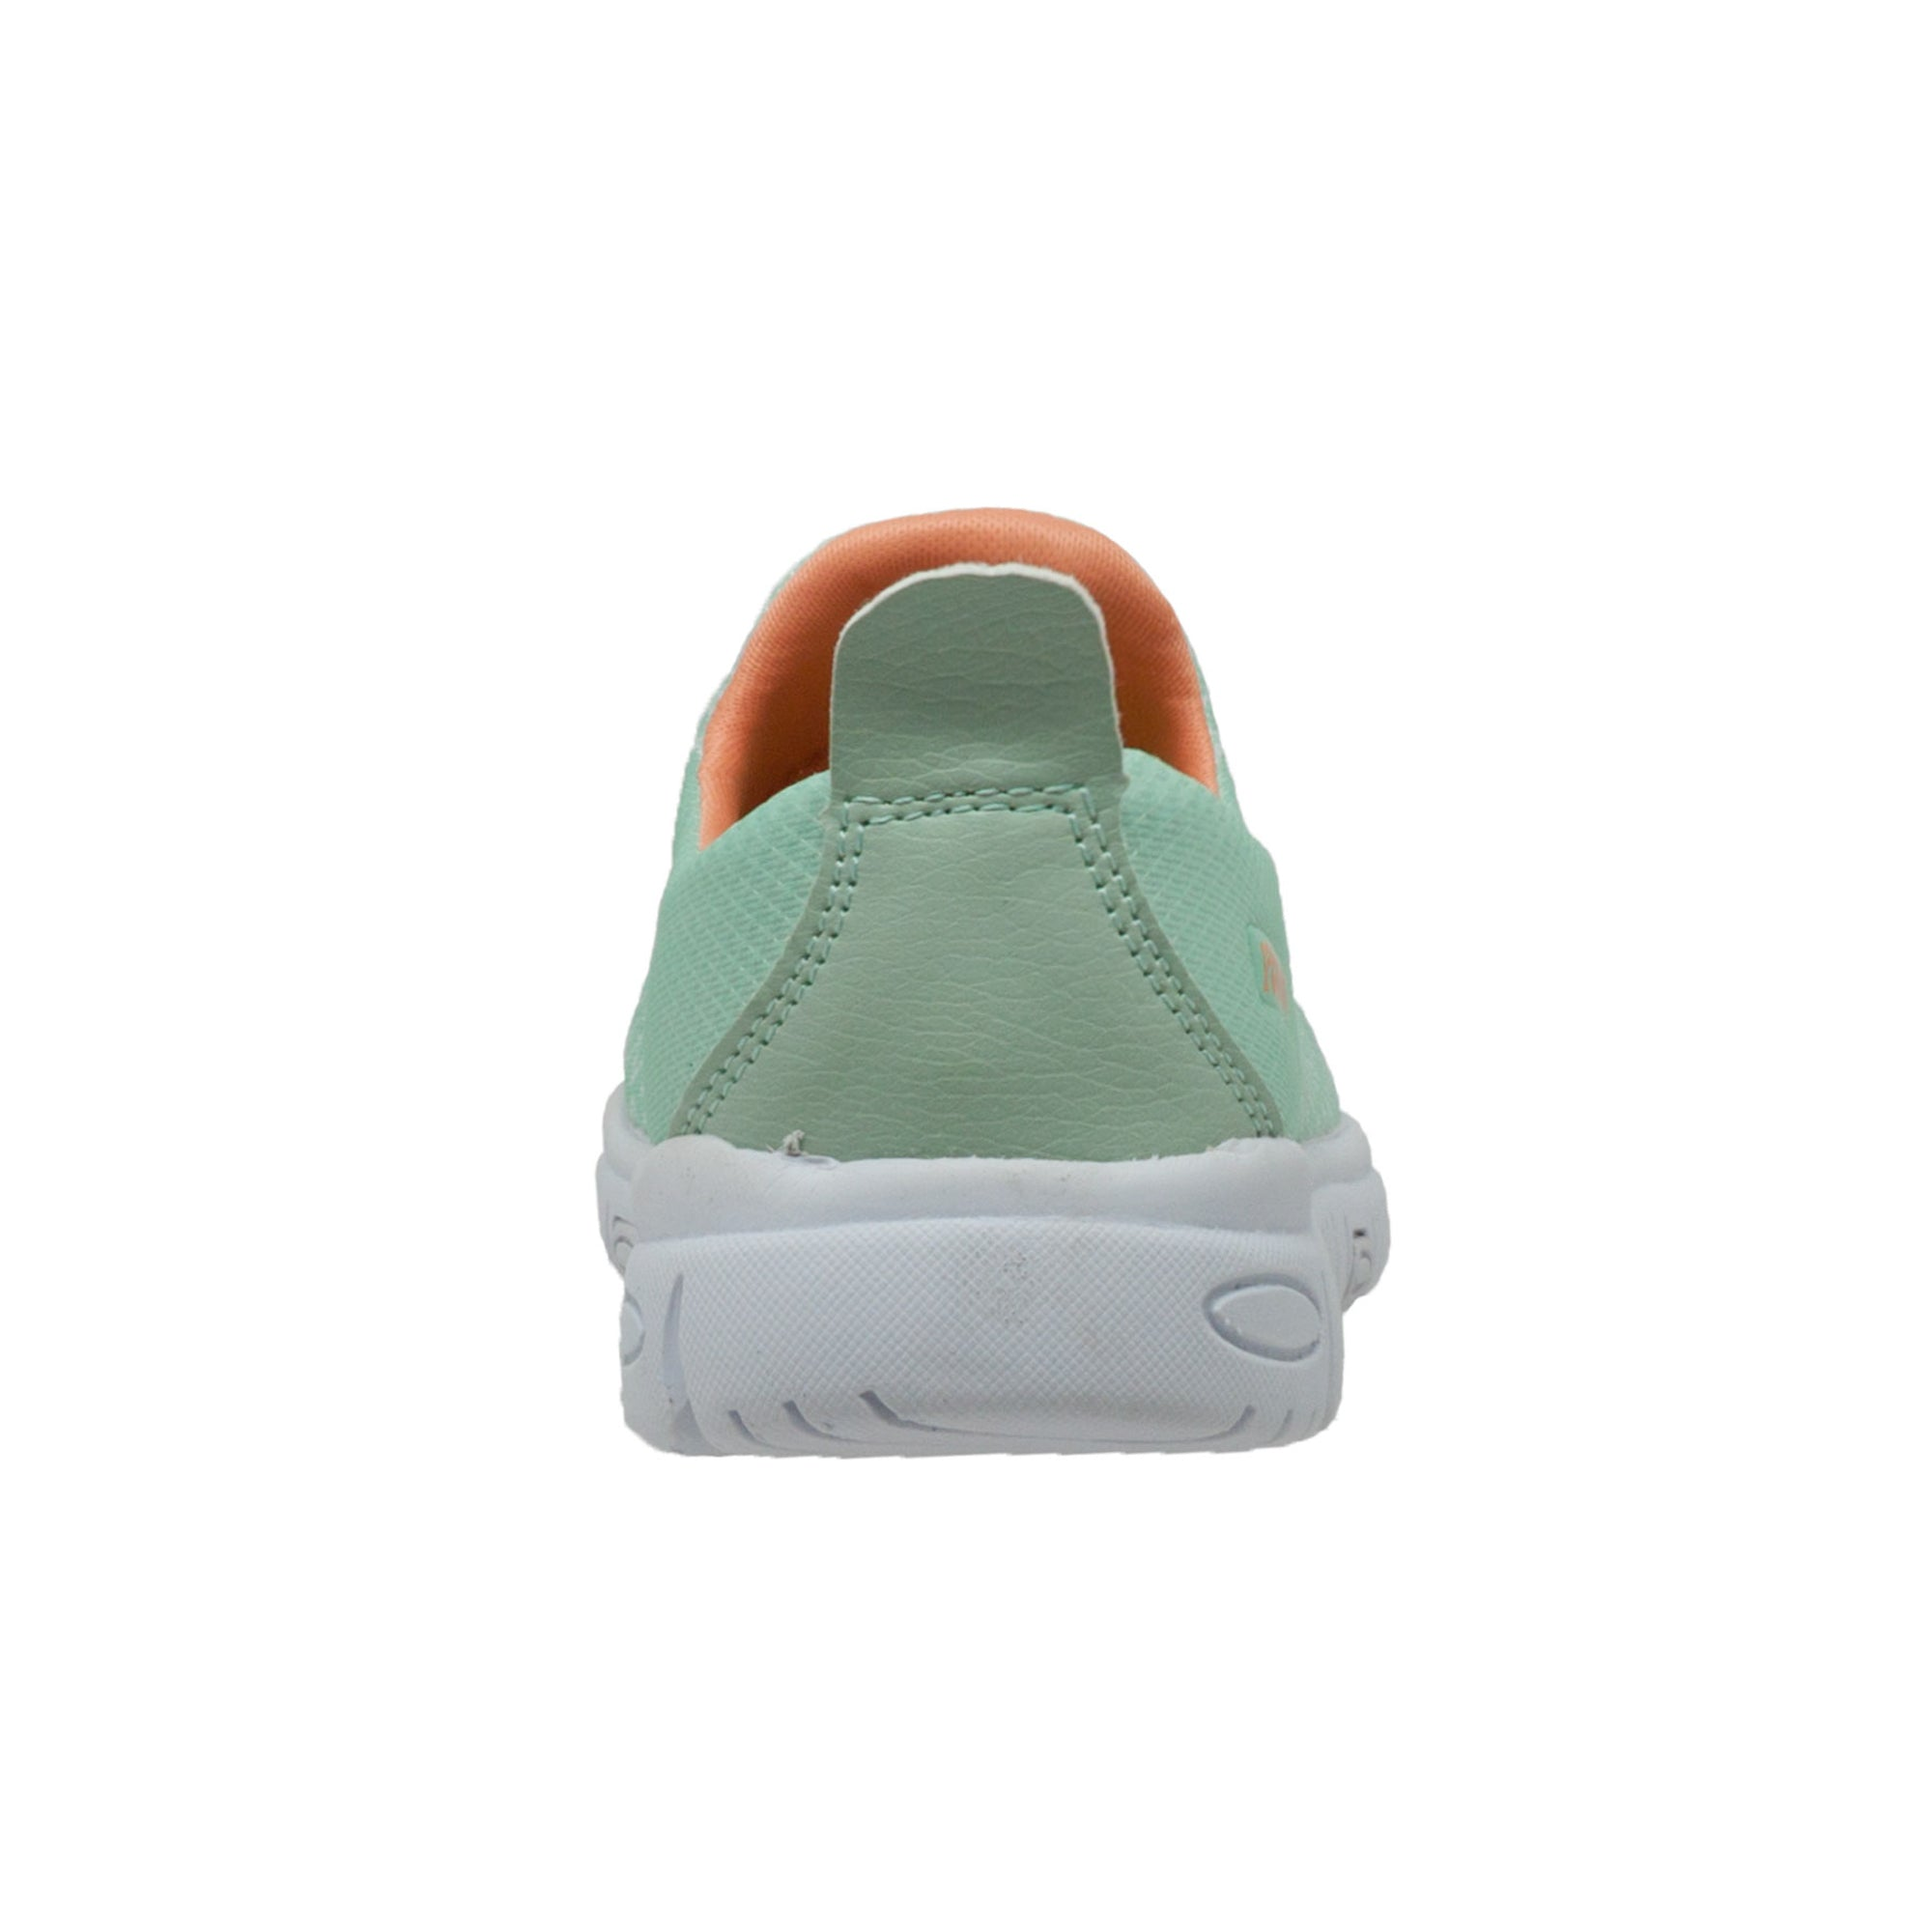 c9f56eac9f5d Rocsoc Womens Green Orange Comfort Stride Slip On Mesh – The Western ...